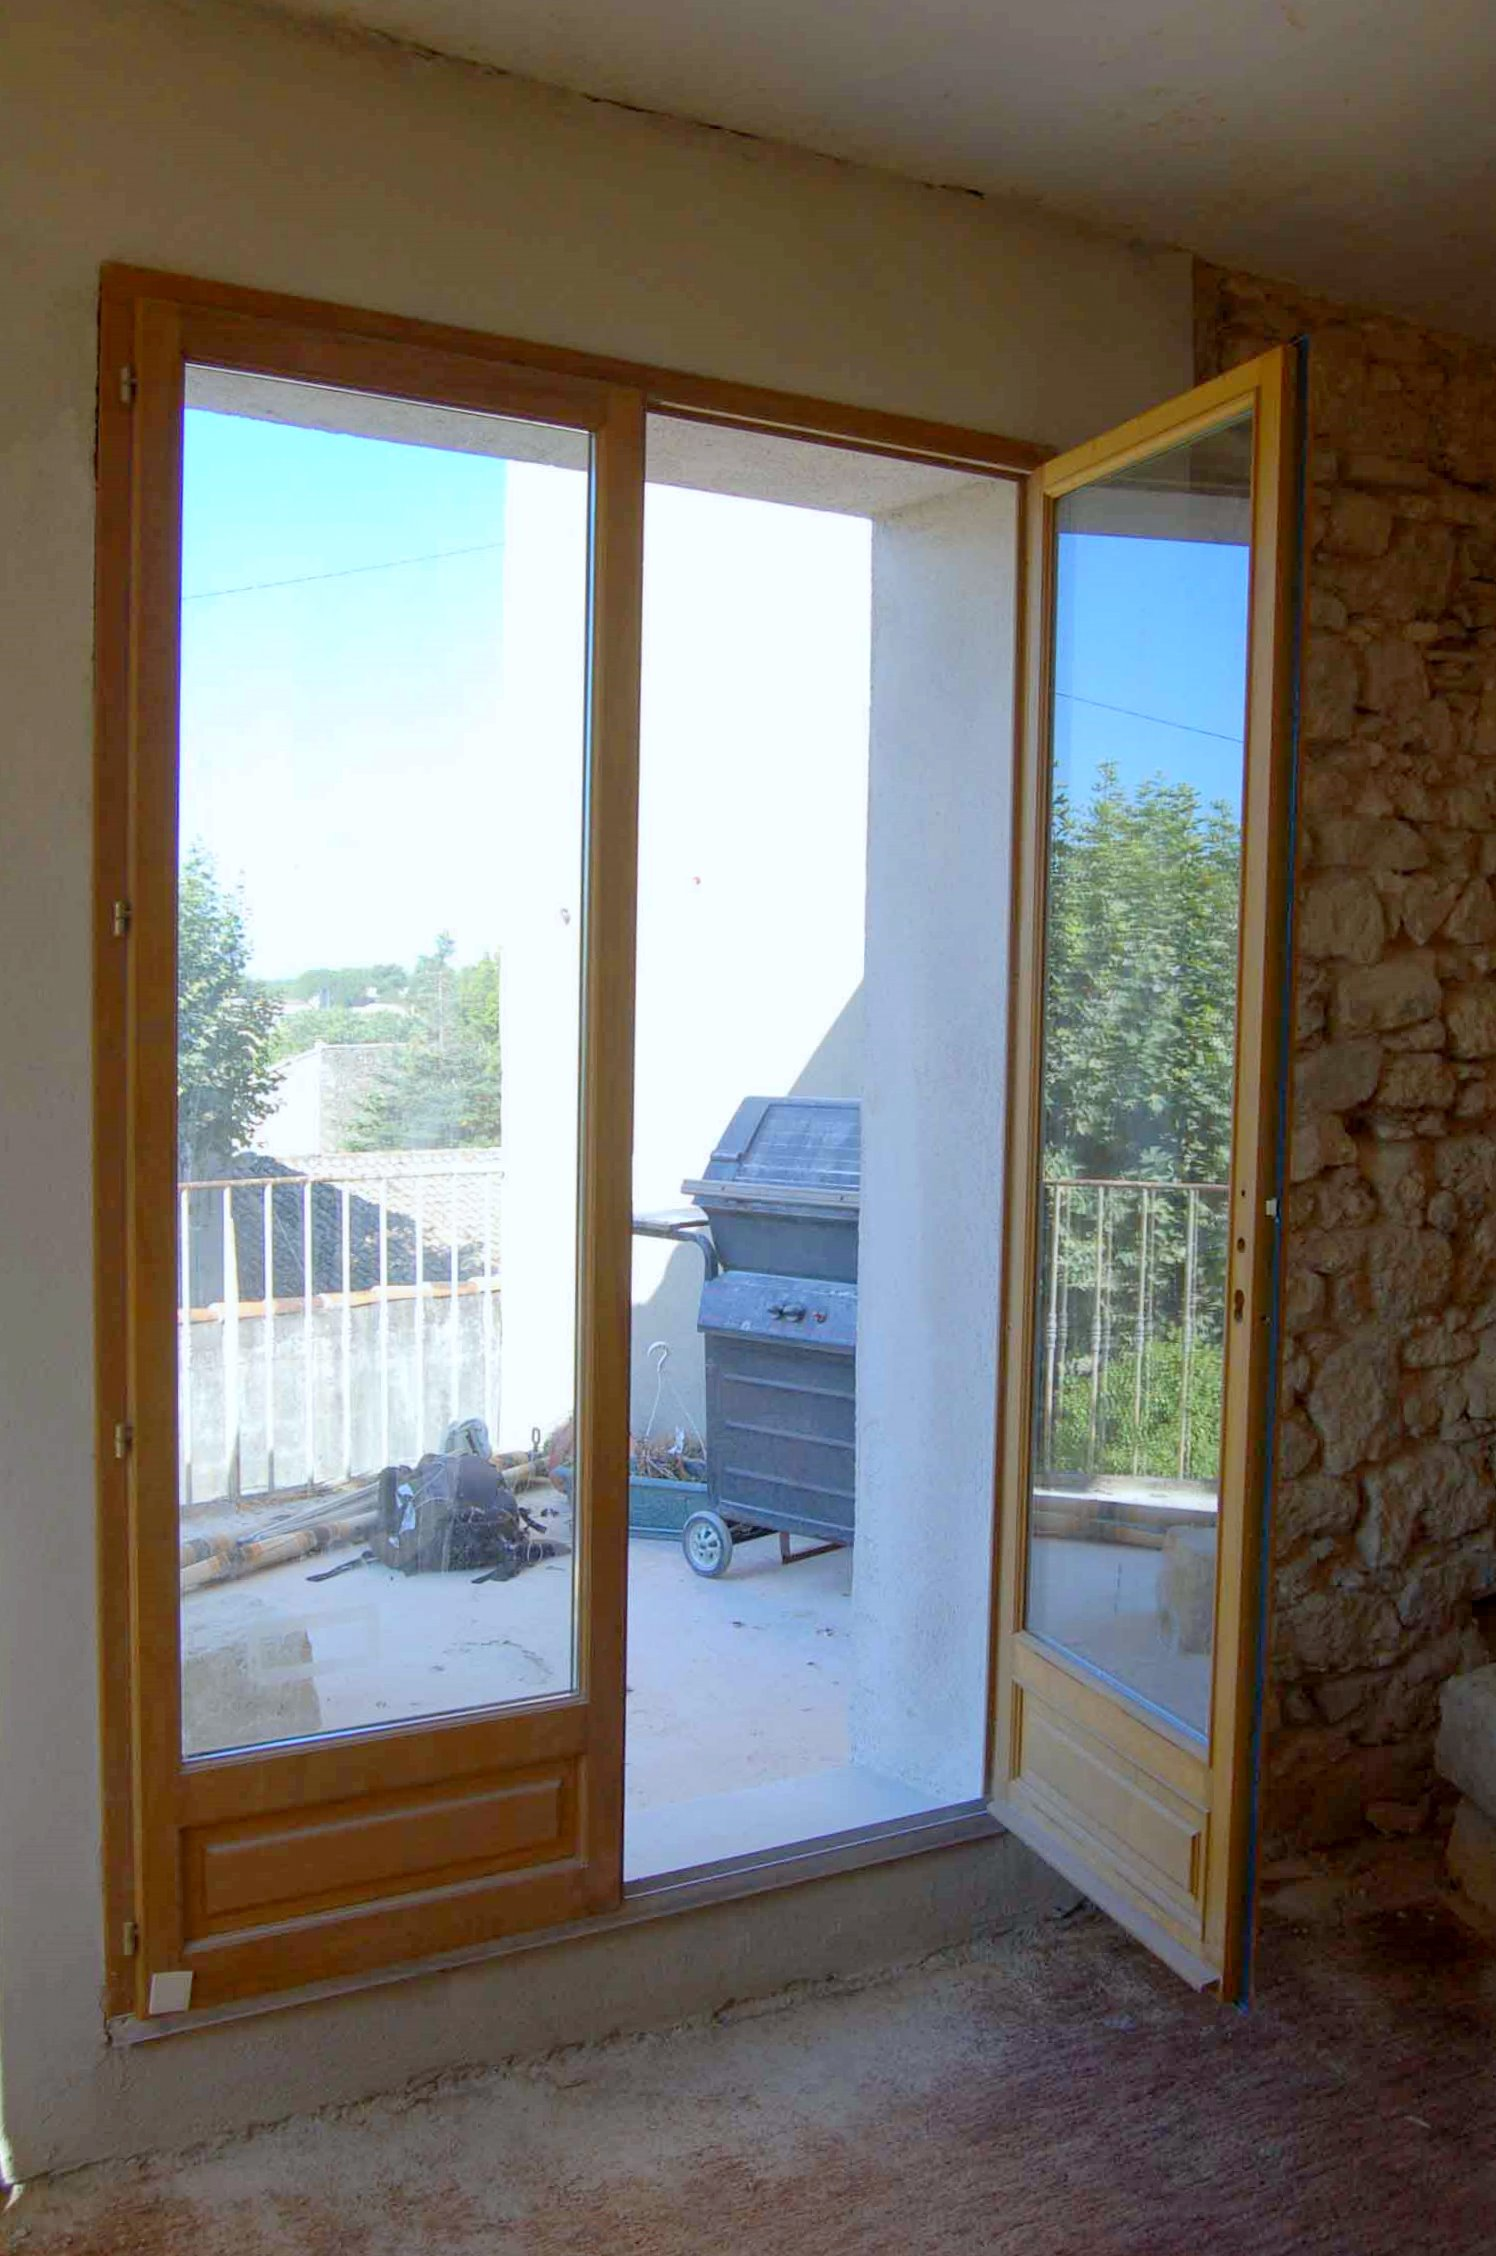 Blog renovationcastries page 6 - Fenetre et porte ...